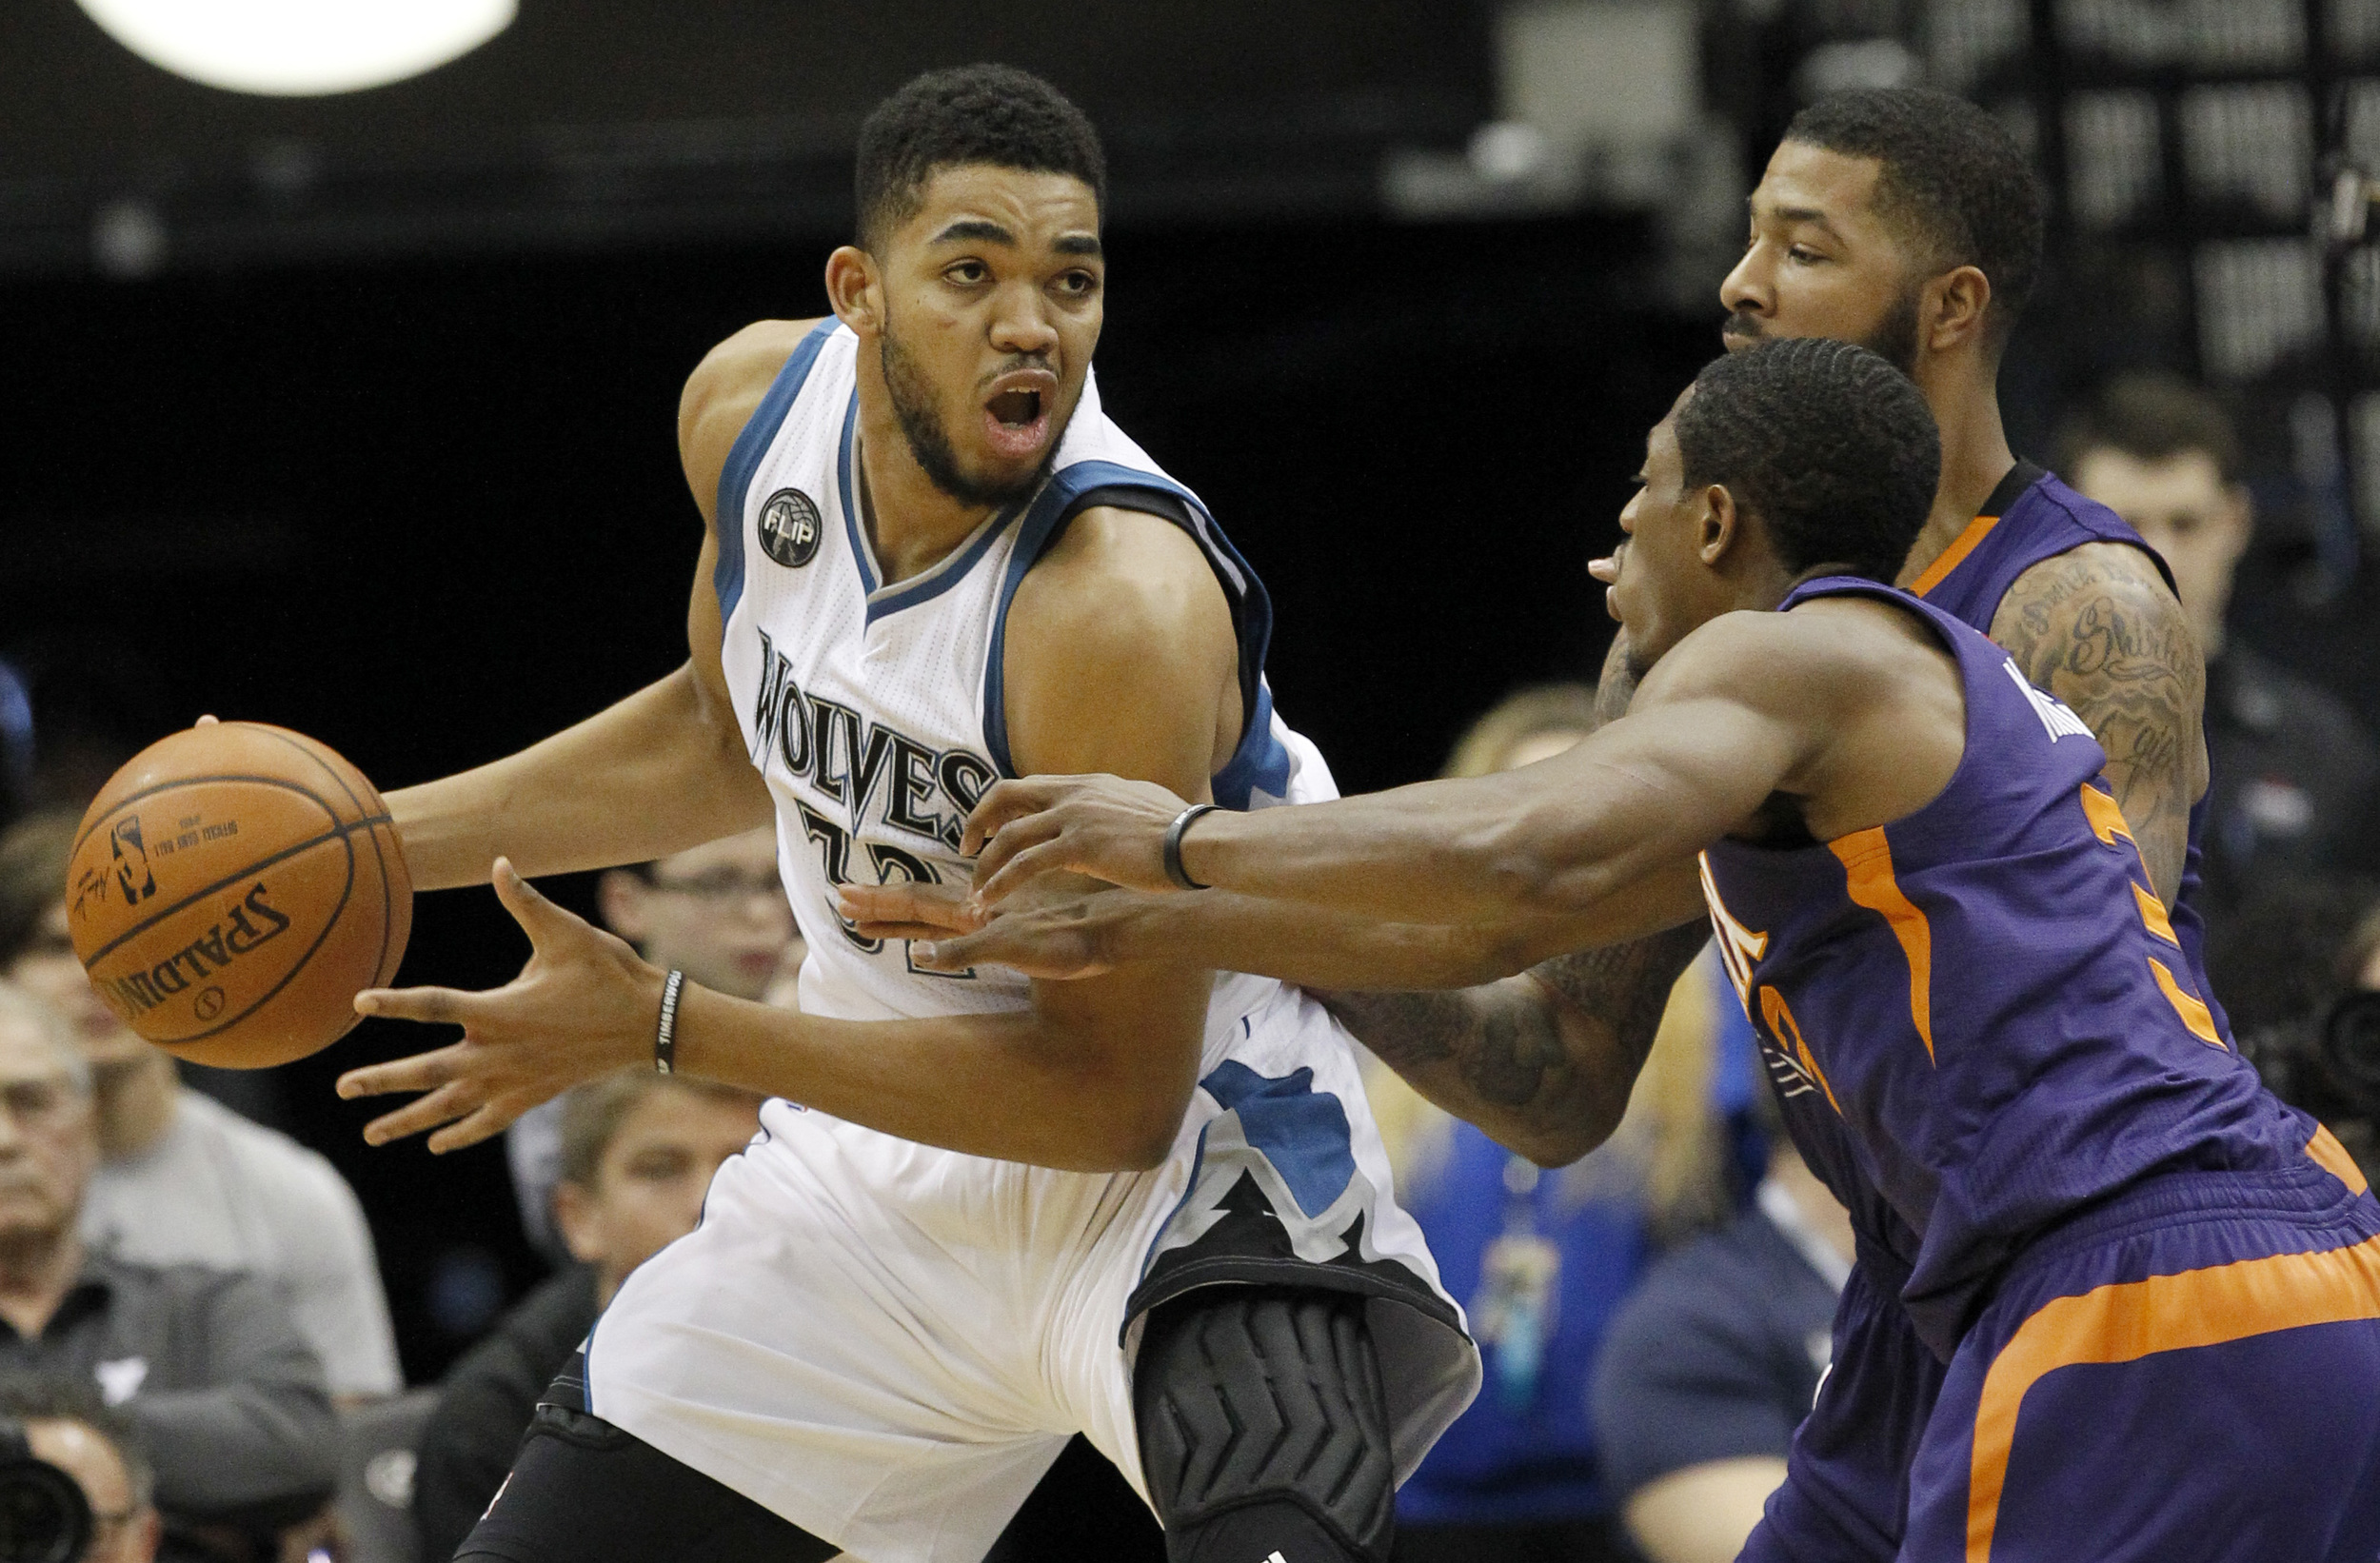 Minnesota Timberwolves center Karl-Anthony Towns, left, looks to pass to a teammate under pressure from Phoenix Suns forward Markieff Morris, right rear, and Suns guard Brandon Knight, right front, during the second half of an NBA basketball game in Minneapolis, Sunday, Jan. 17, 2016. (Ann Heisenfelt/AP)